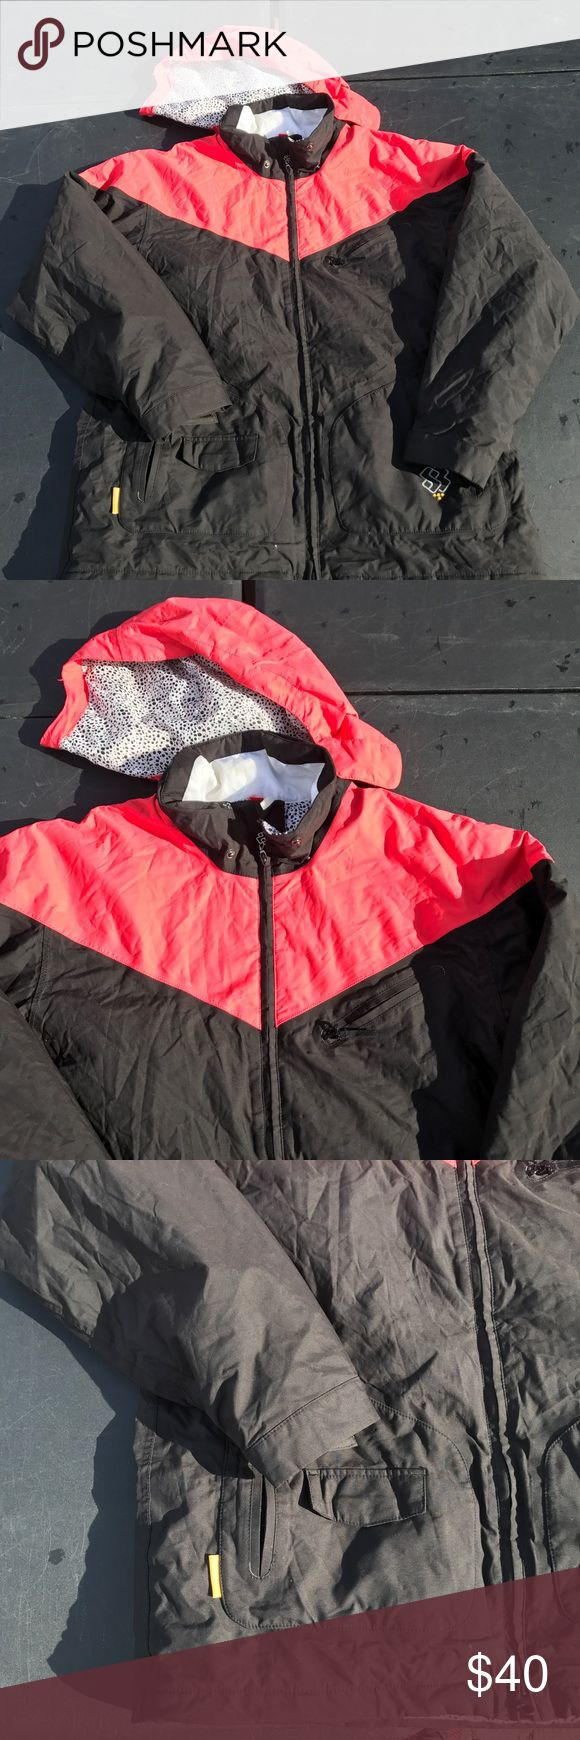 Special blend snow jacket snowboarding medium Men's  Size medium  Snow boarding jacket  Fire red and black  All zippers include  Smudge in neck  Gray condition , no rips Special blend The North Face Jackets & Coats Ski & Snowboard